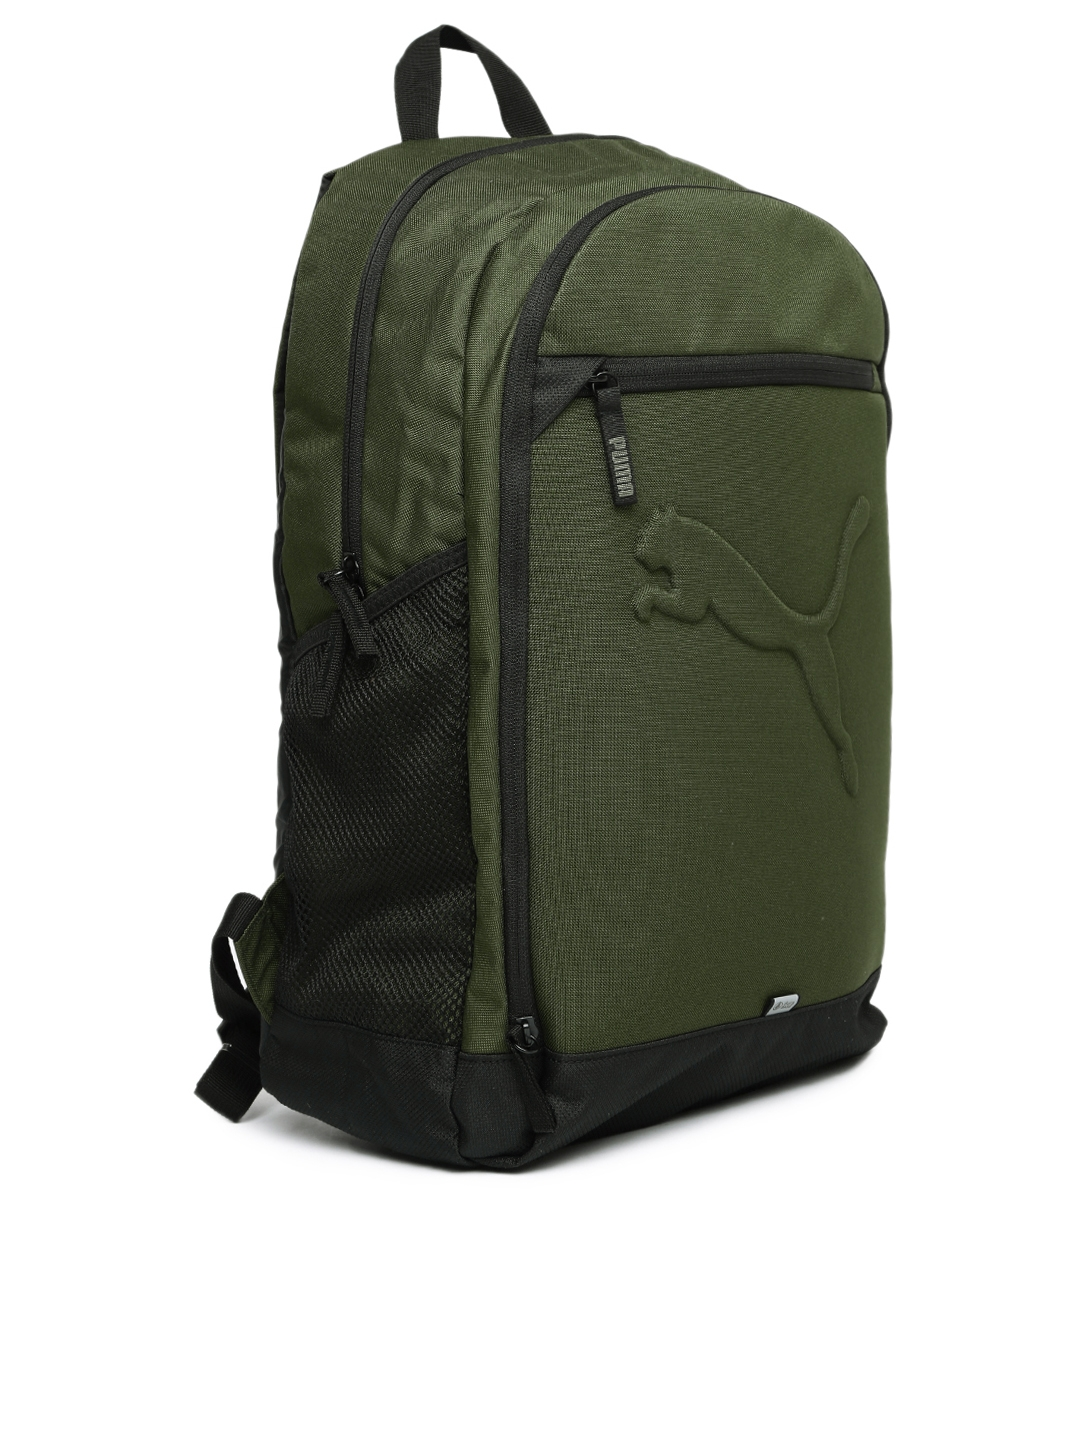 Buy Puma Unisex Olive Green Buzz Backpack - Backpacks for Unisex ... 5e5d6c09a9bcf